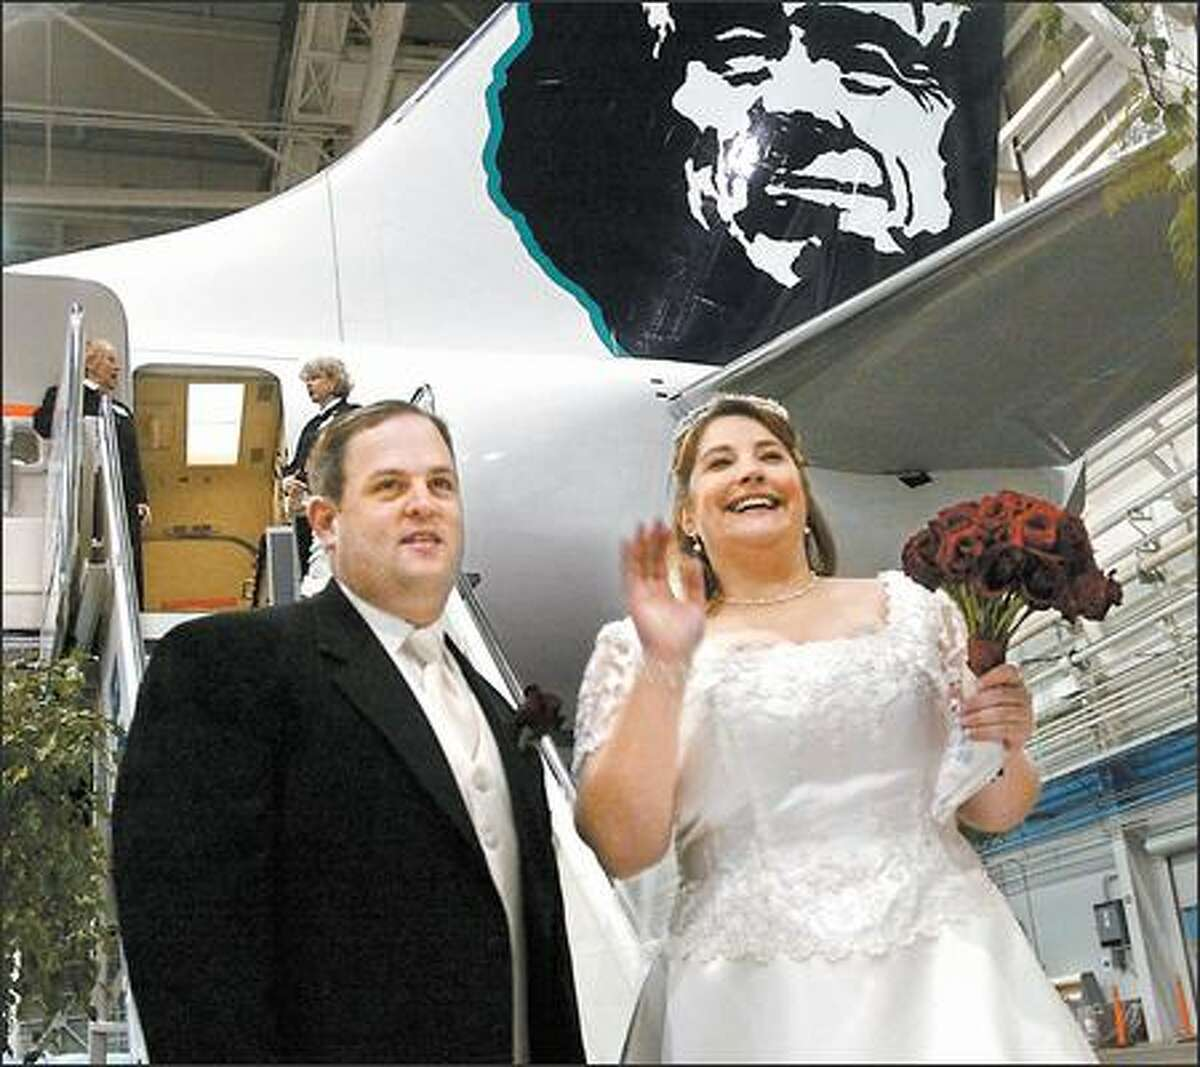 Alaska Airlines celebrated the delivery of its newest airplane, a Boeing 737-800, yesterday with an onboard wedding with employees Frank Raymond and Jennifer Genna. Raymond and Genna, shown here before boarding the airplane, planned to tie the knot over Mt. Rainier.